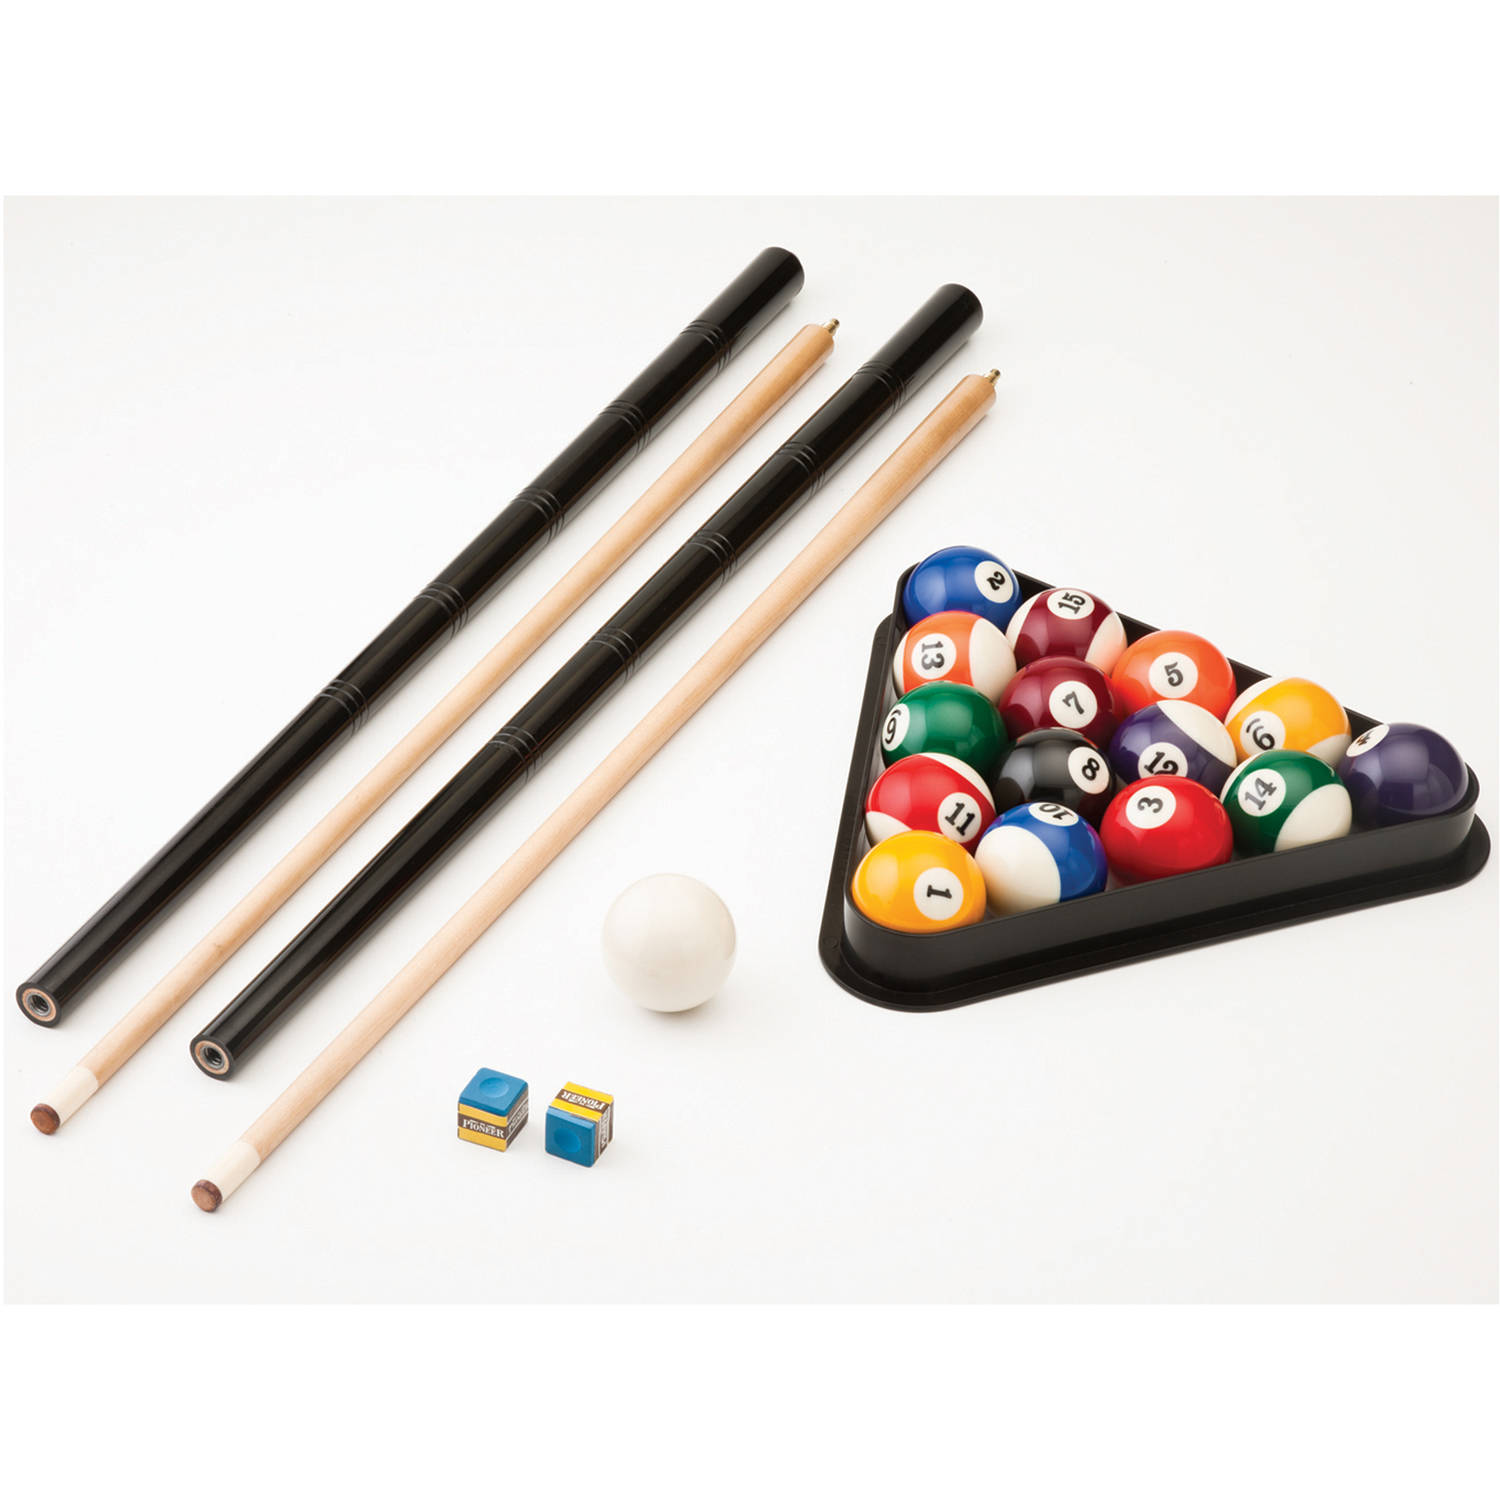 Fat Cat Reno Pool Table Walmartcom - Reno pool table